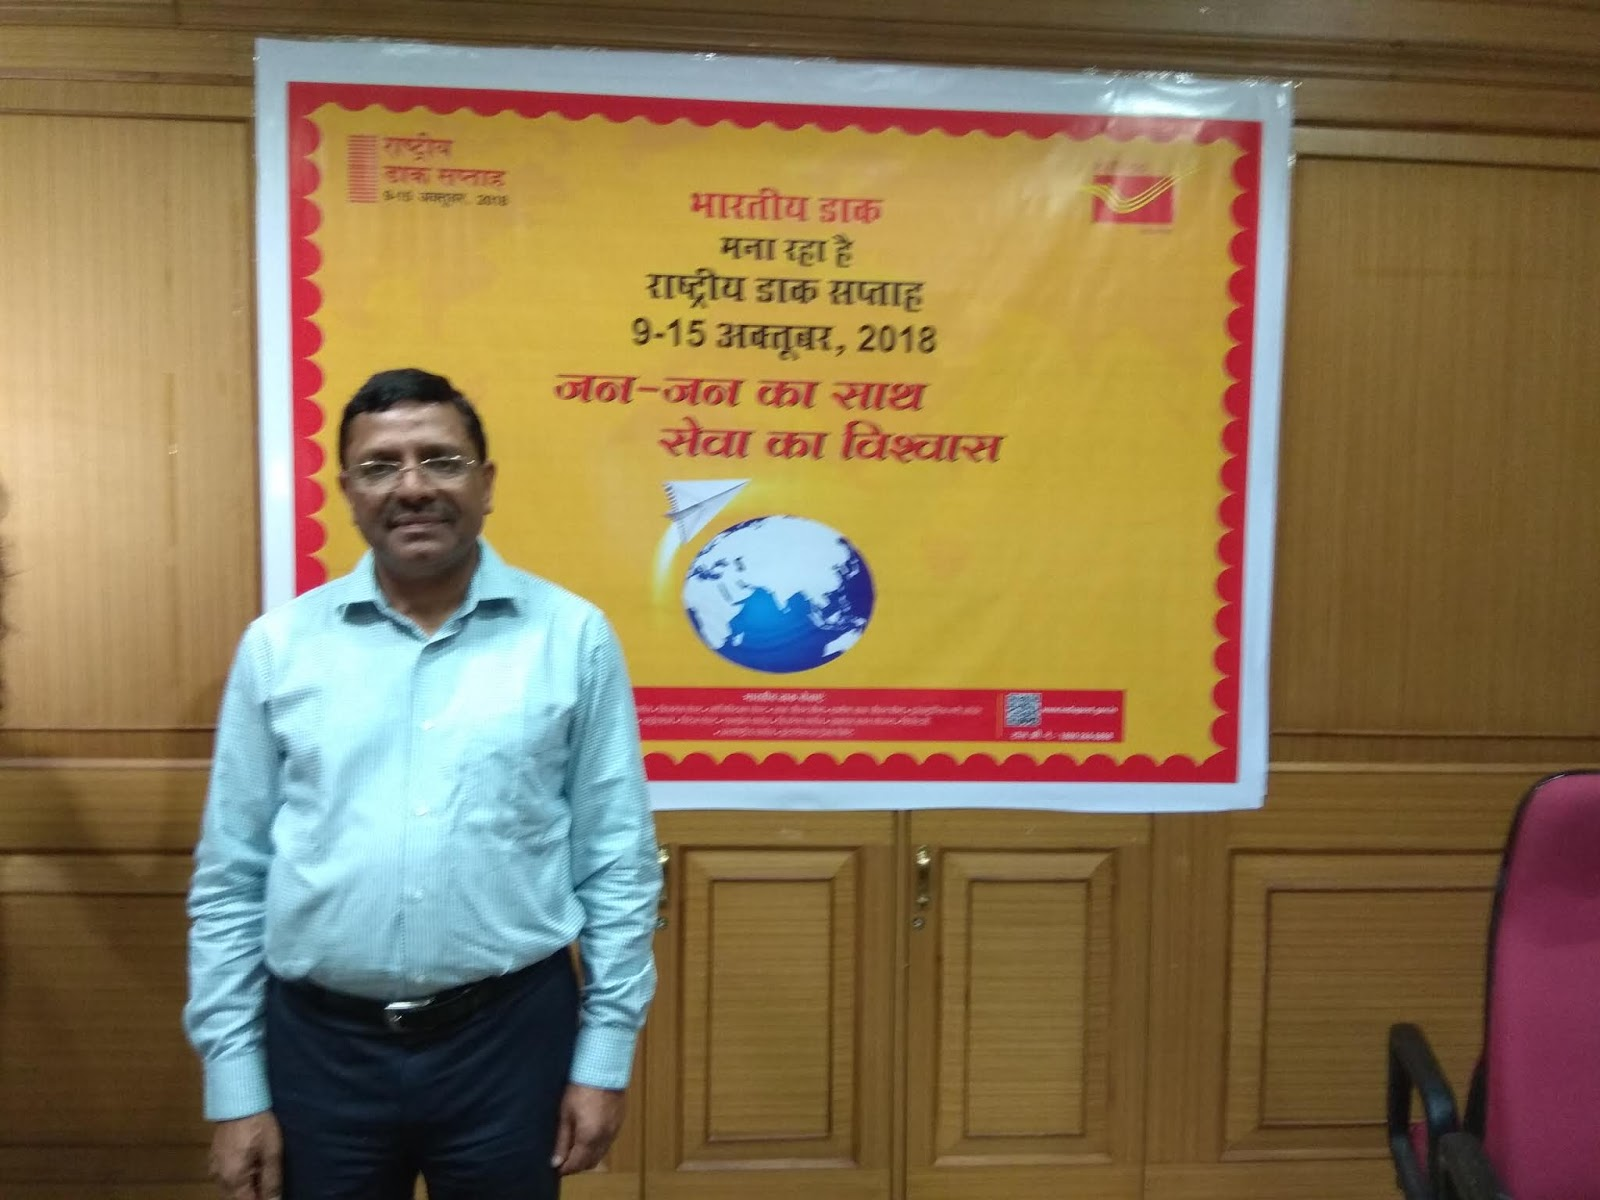 Celebrations Of National Postal Week2018 9th 15th October2018 23rd Vlsi Conference Held In Nimhans Convention Centre Bangalore The World Post Day Marks Anniversary Establishment Universal Union And Is On October 9 Every Year